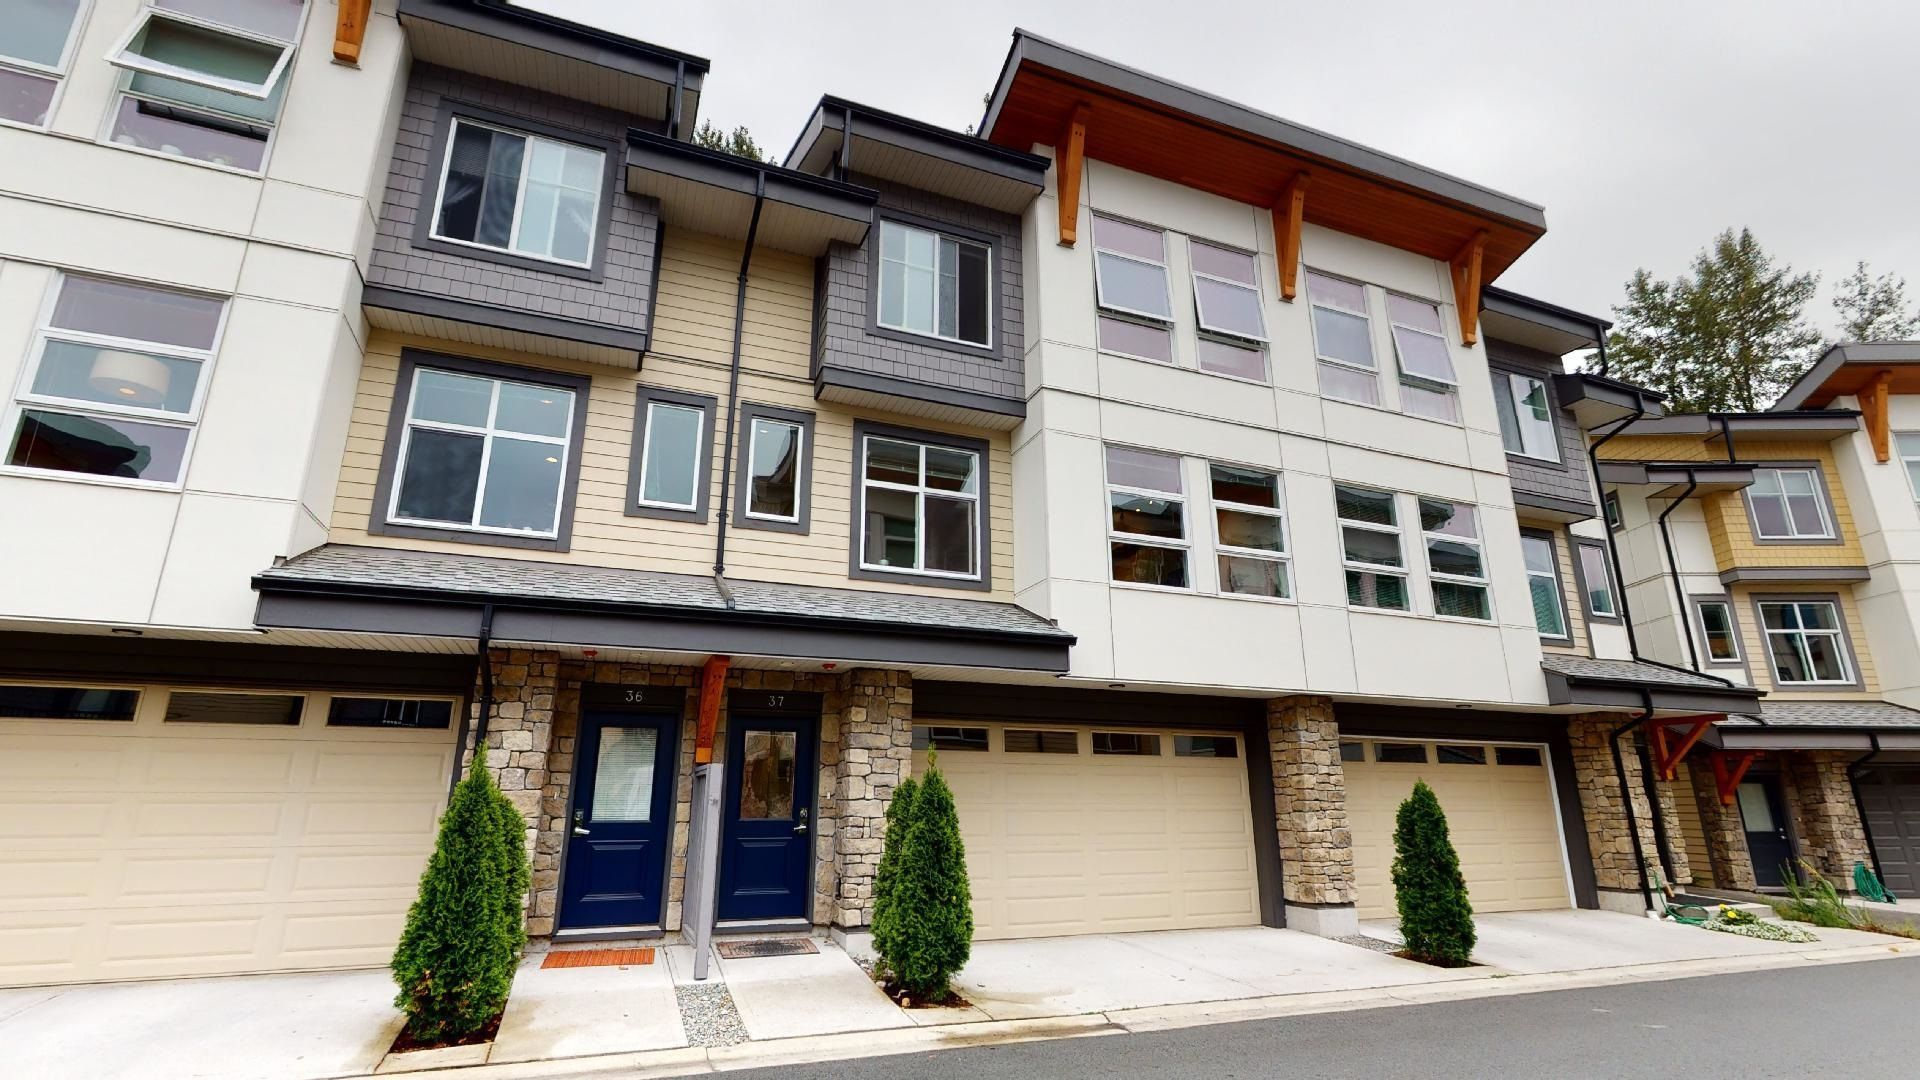 """Main Photo: 37 39548 LOGGERS Lane in Squamish: Brennan Center Townhouse for sale in """"Seven Peaks"""" : MLS®# R2612881"""